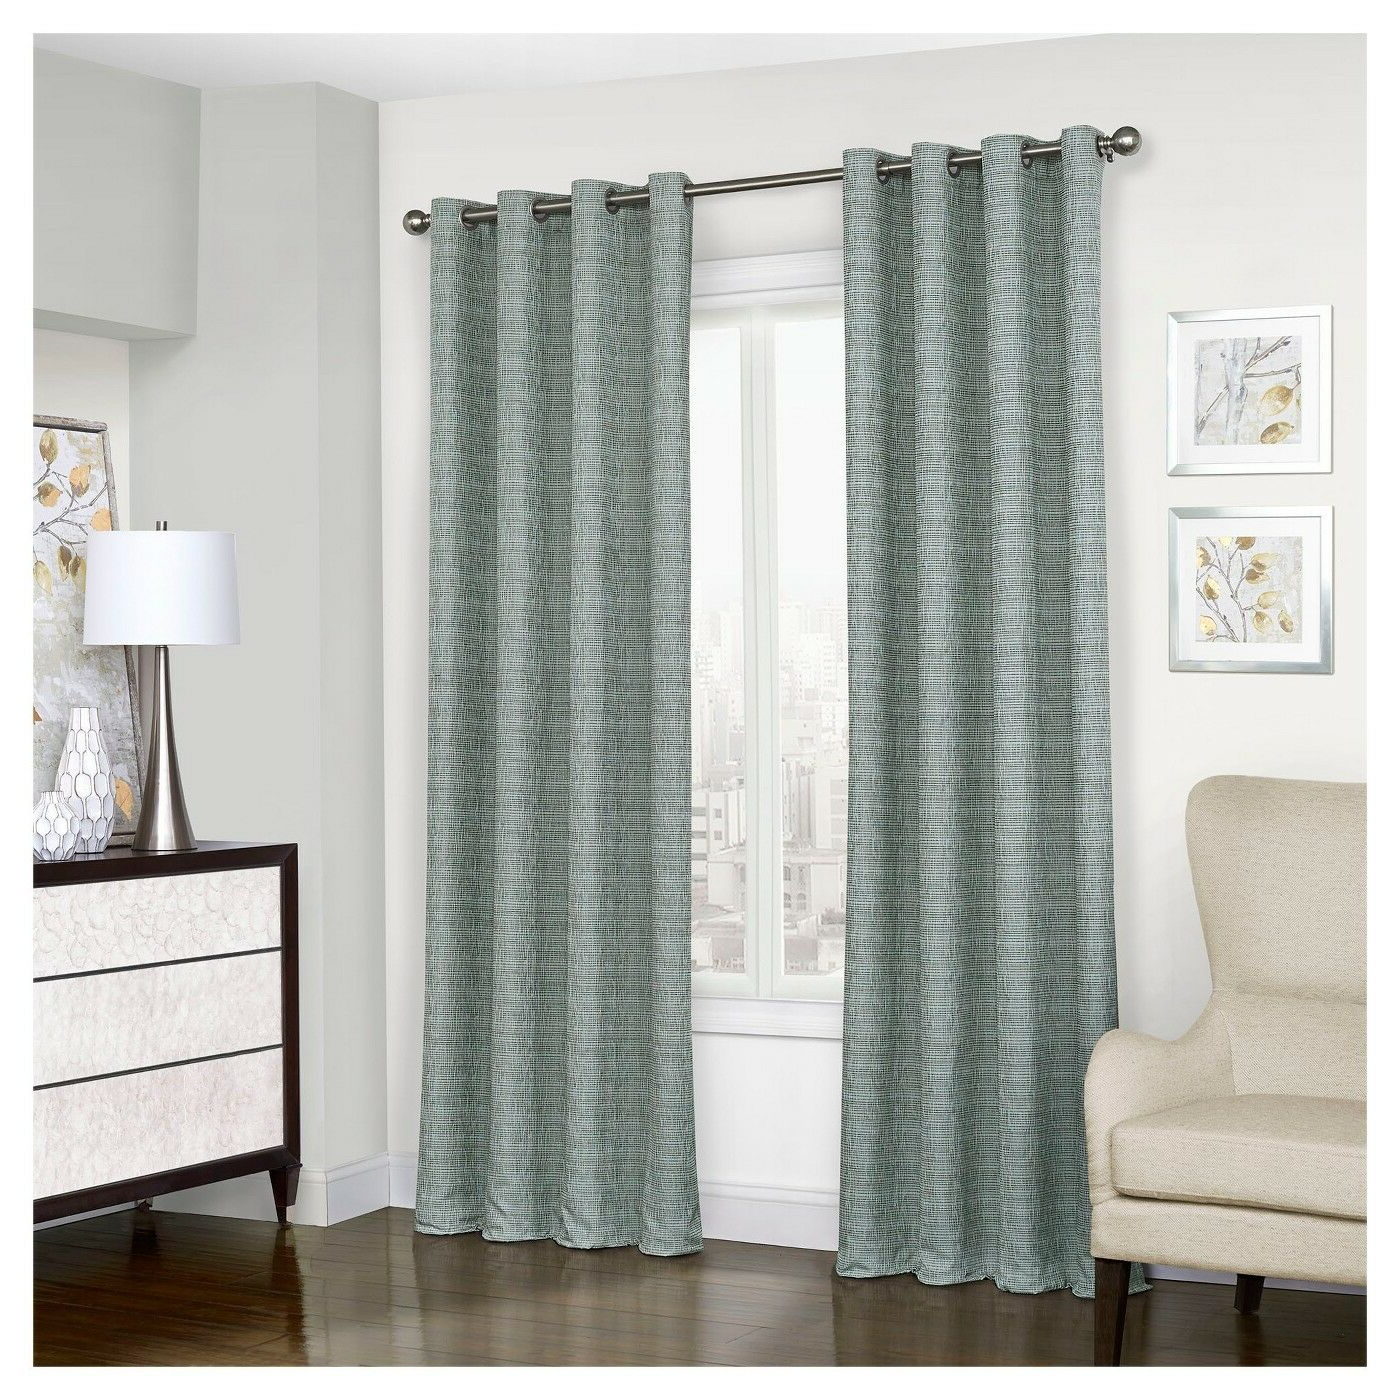 Eclipse Trevi Blackout Grommet Window Curtain Panel Inside Popular Eclipse Trevi Blackout Grommet Window Curtain Panels (Gallery 11 of 20)